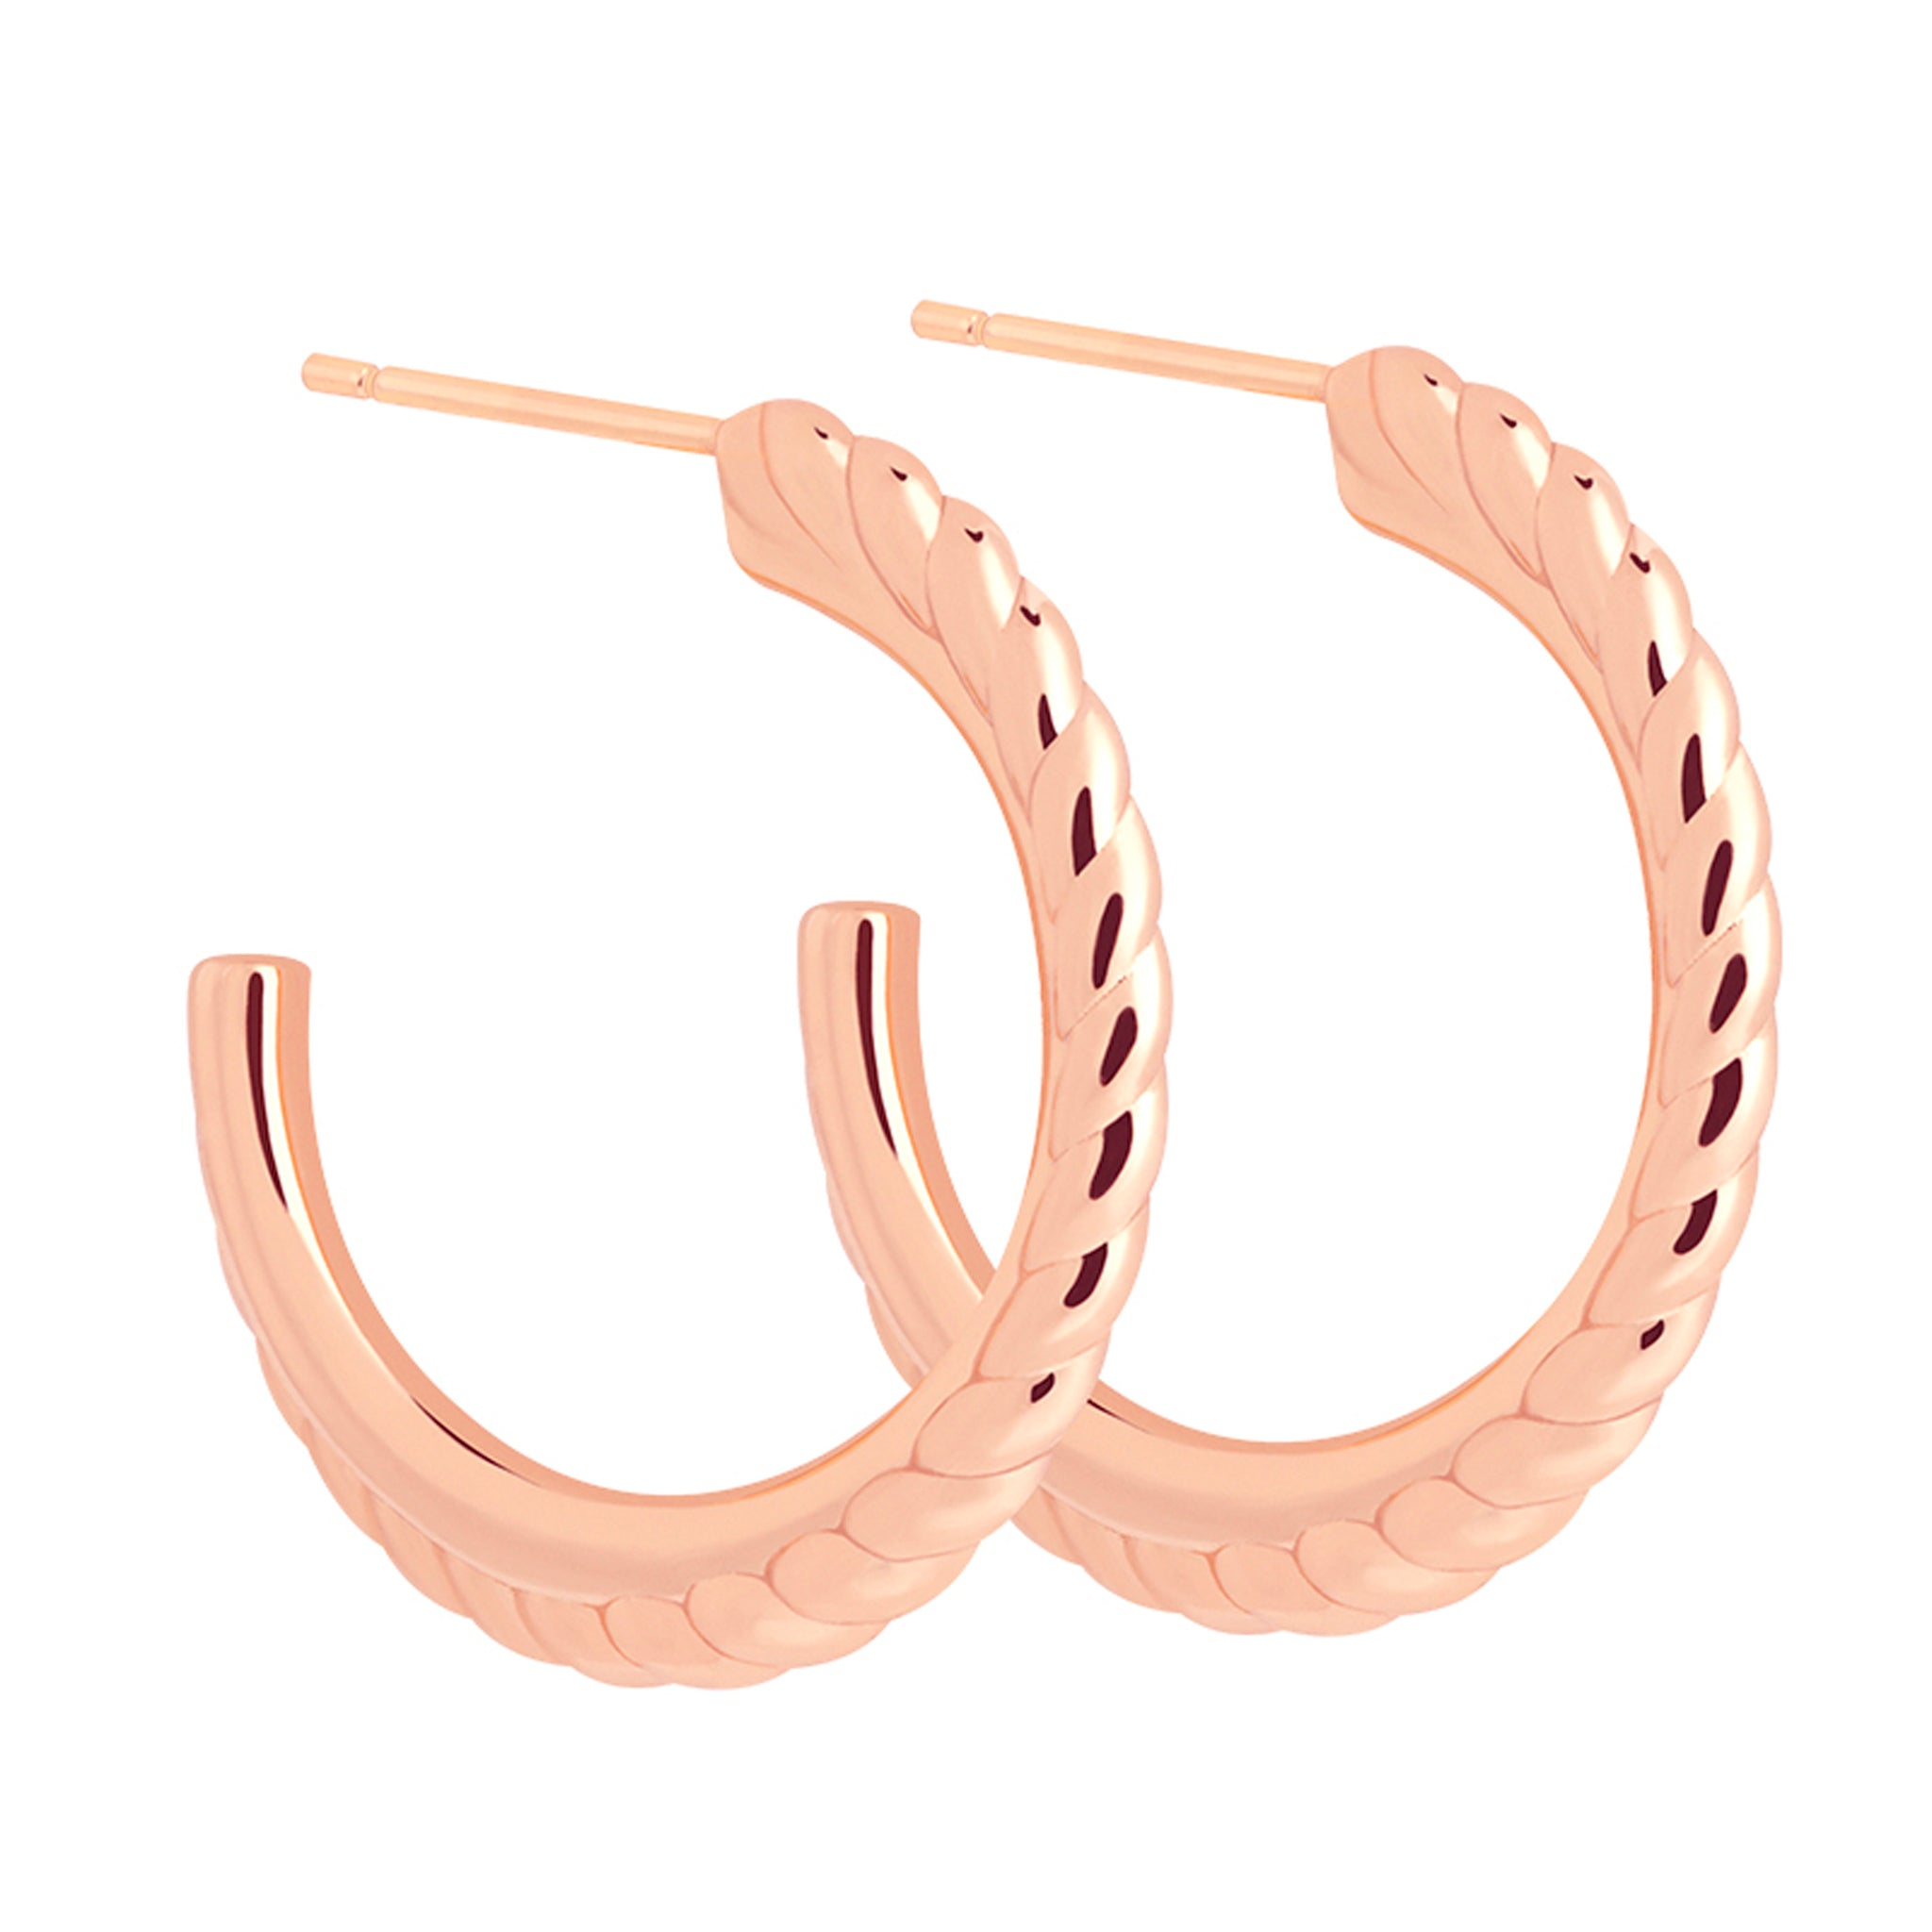 Interlocked Band Hoops in Rose Gold